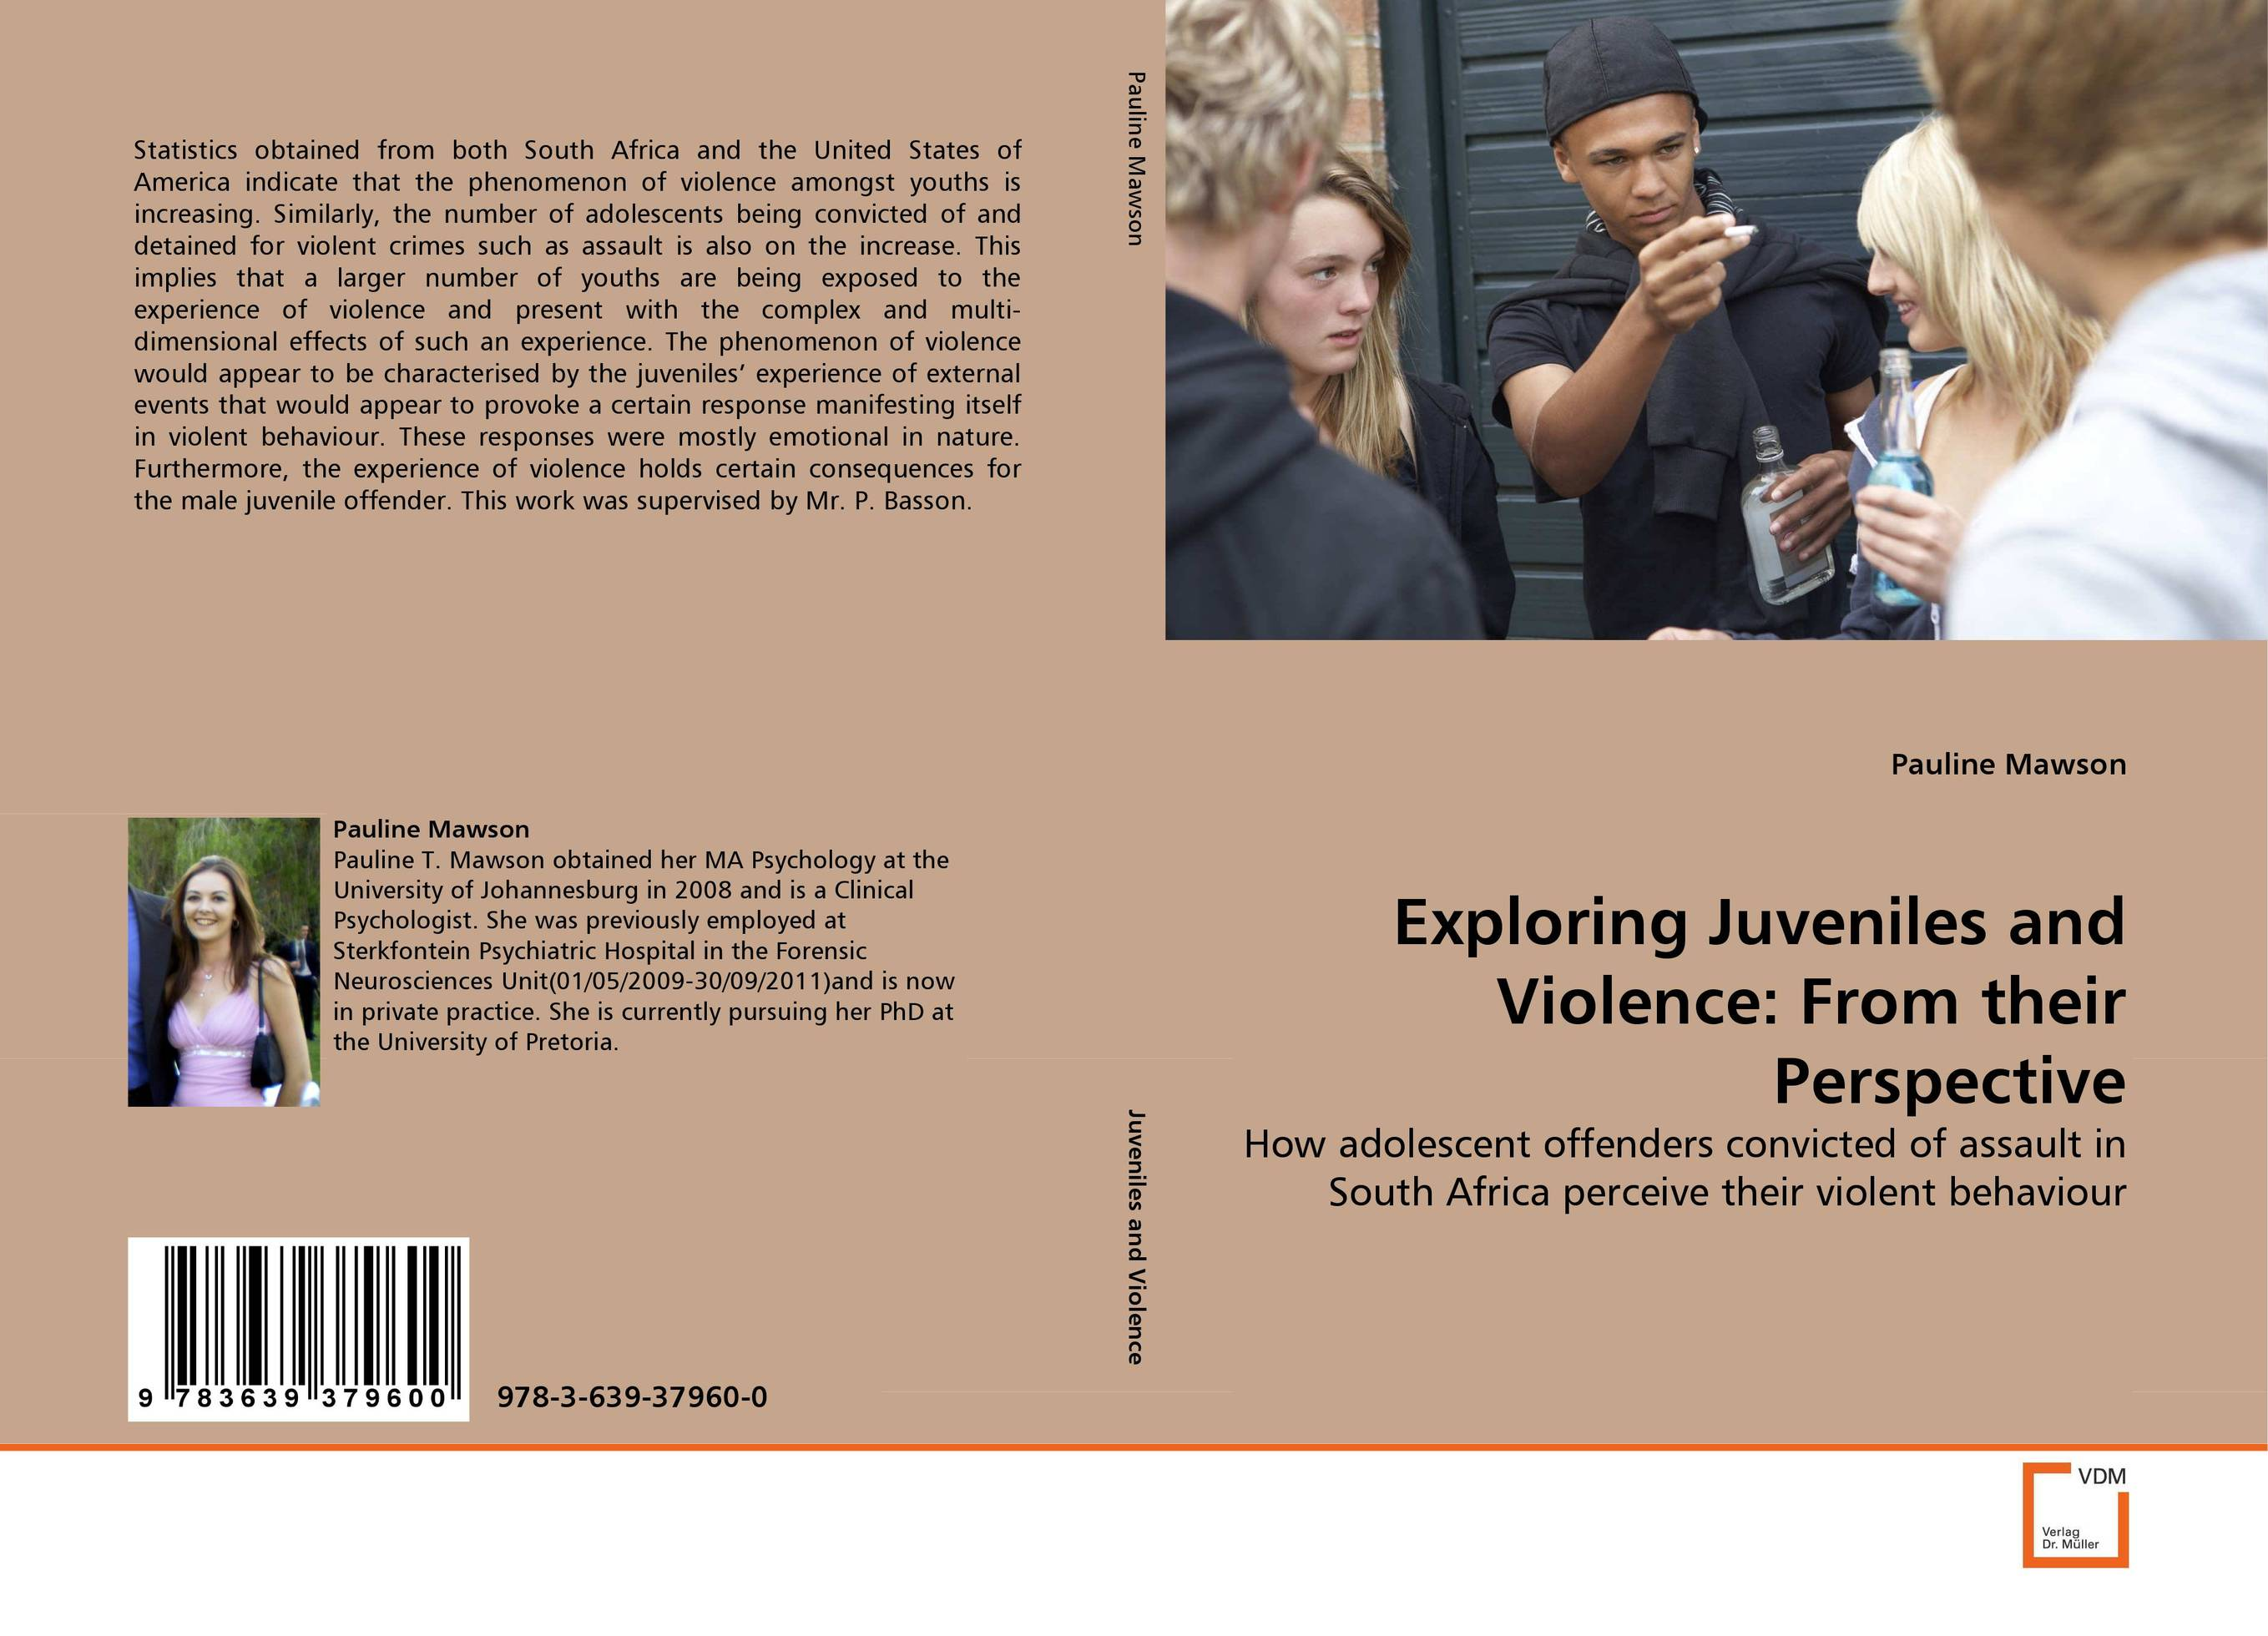 the history characteristics causes and violence of juvenile gangs in the united states The prison gangs and subculture literature concentrates on the causes and consequences of gang and subculture behaviors and processes in incarcerated settings, as well as the movement into and out of these settings lyman 1989, p 48, (cited under prison gangs and prevalence) defined a prison gang.